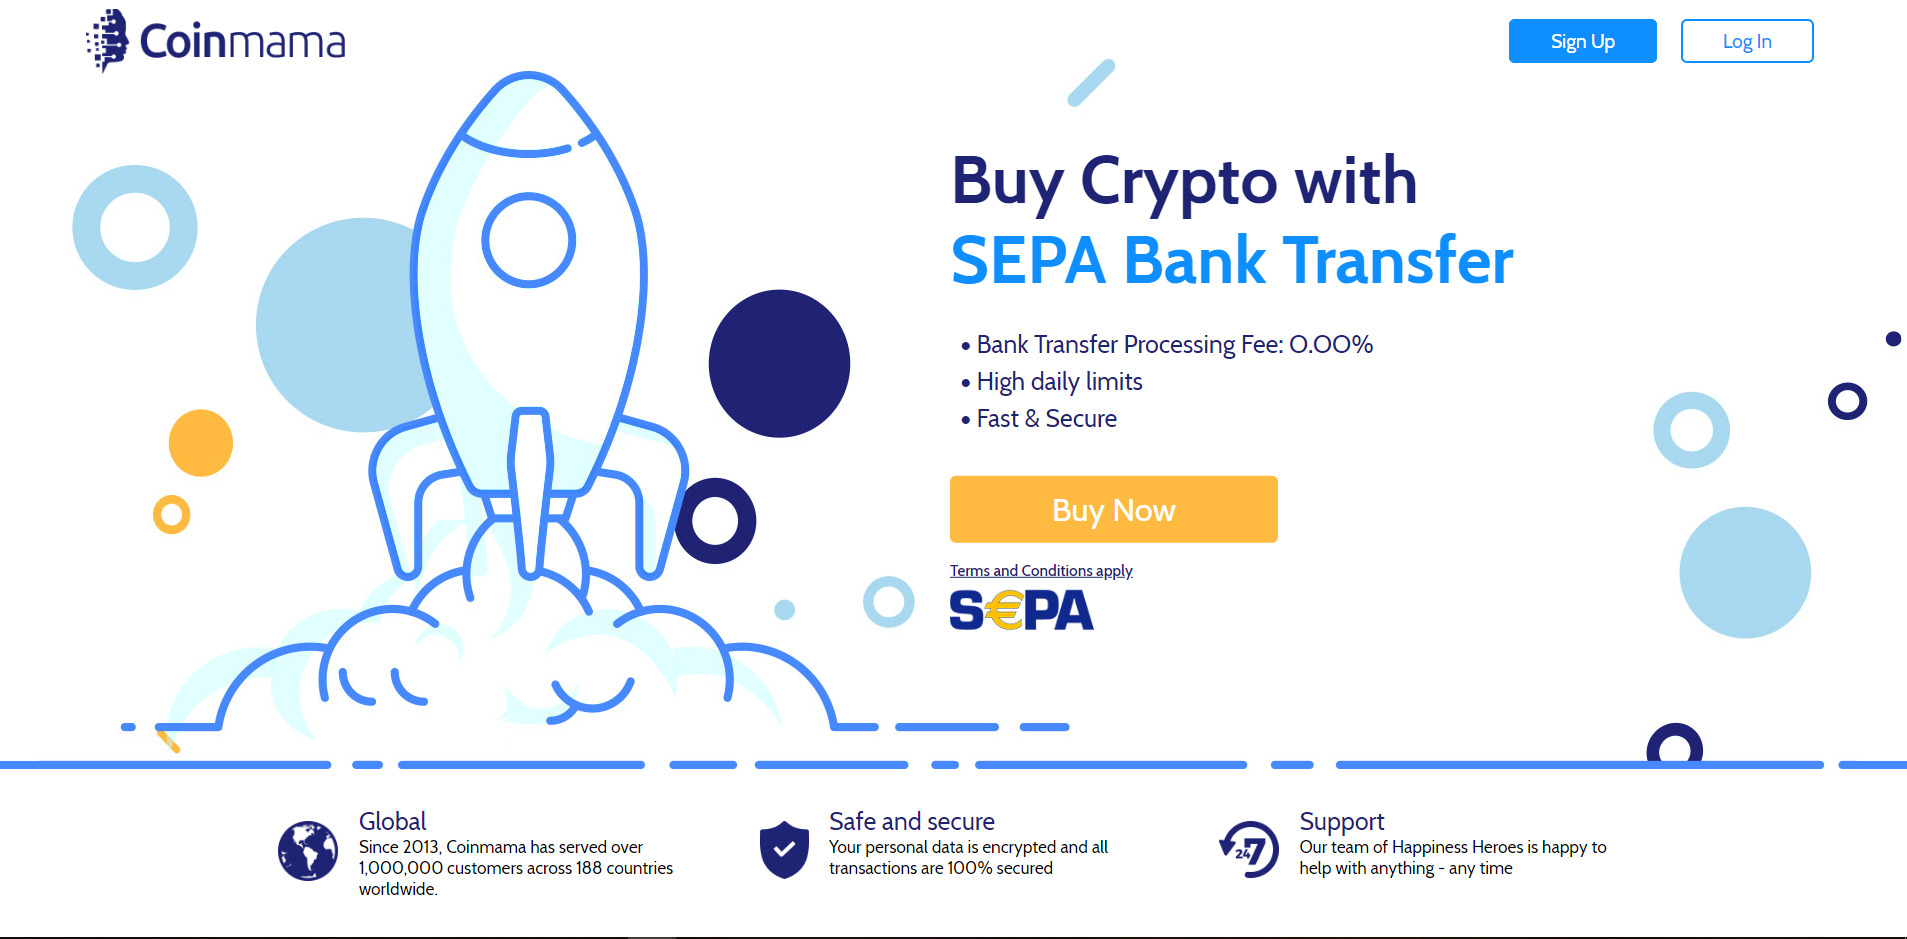 Buy crypto with SEPA bank transfer